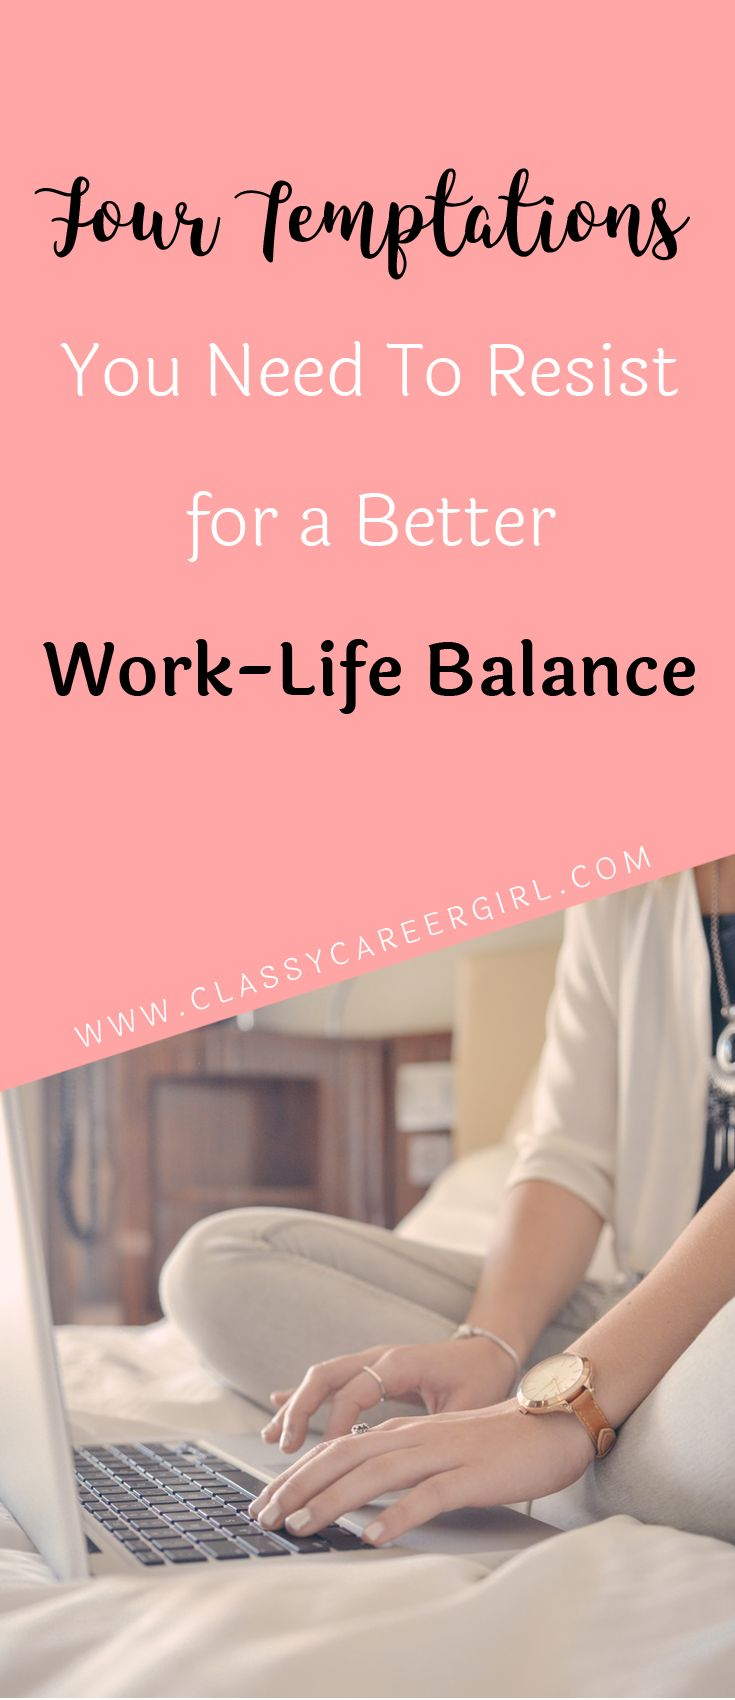 Four Temptations You Need To Resist for a Better Work-Life Balance  Without setting boundaries with work, your personal life will never get the nurturing that it needs. Here are 4 things to say no to attain the elusive goal of work-life balance.  http://www.classycareergirl.com/2016/09/balance-work-life/